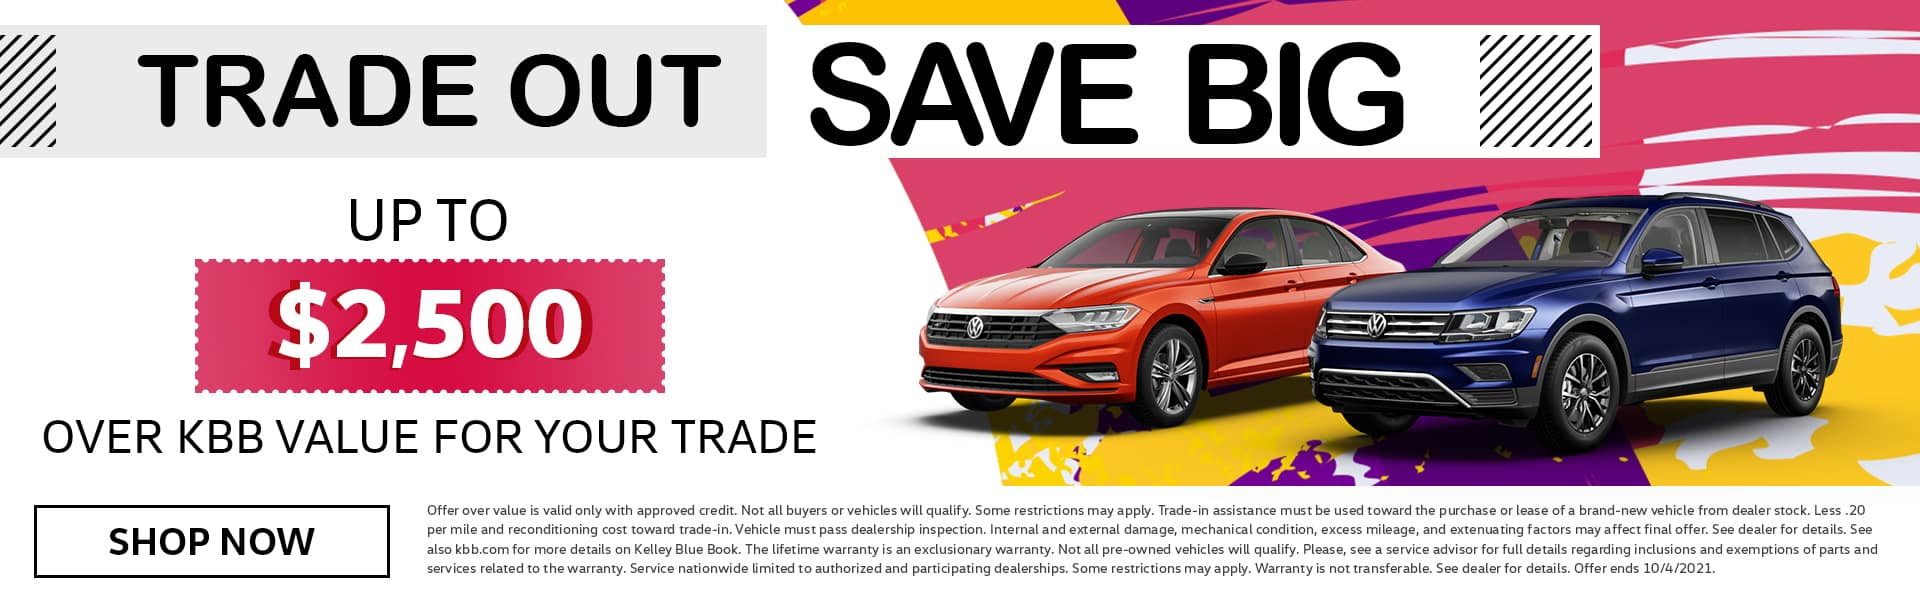 Trade Out Save Big | Up To $2,500 Over KBB Value For Your Trade